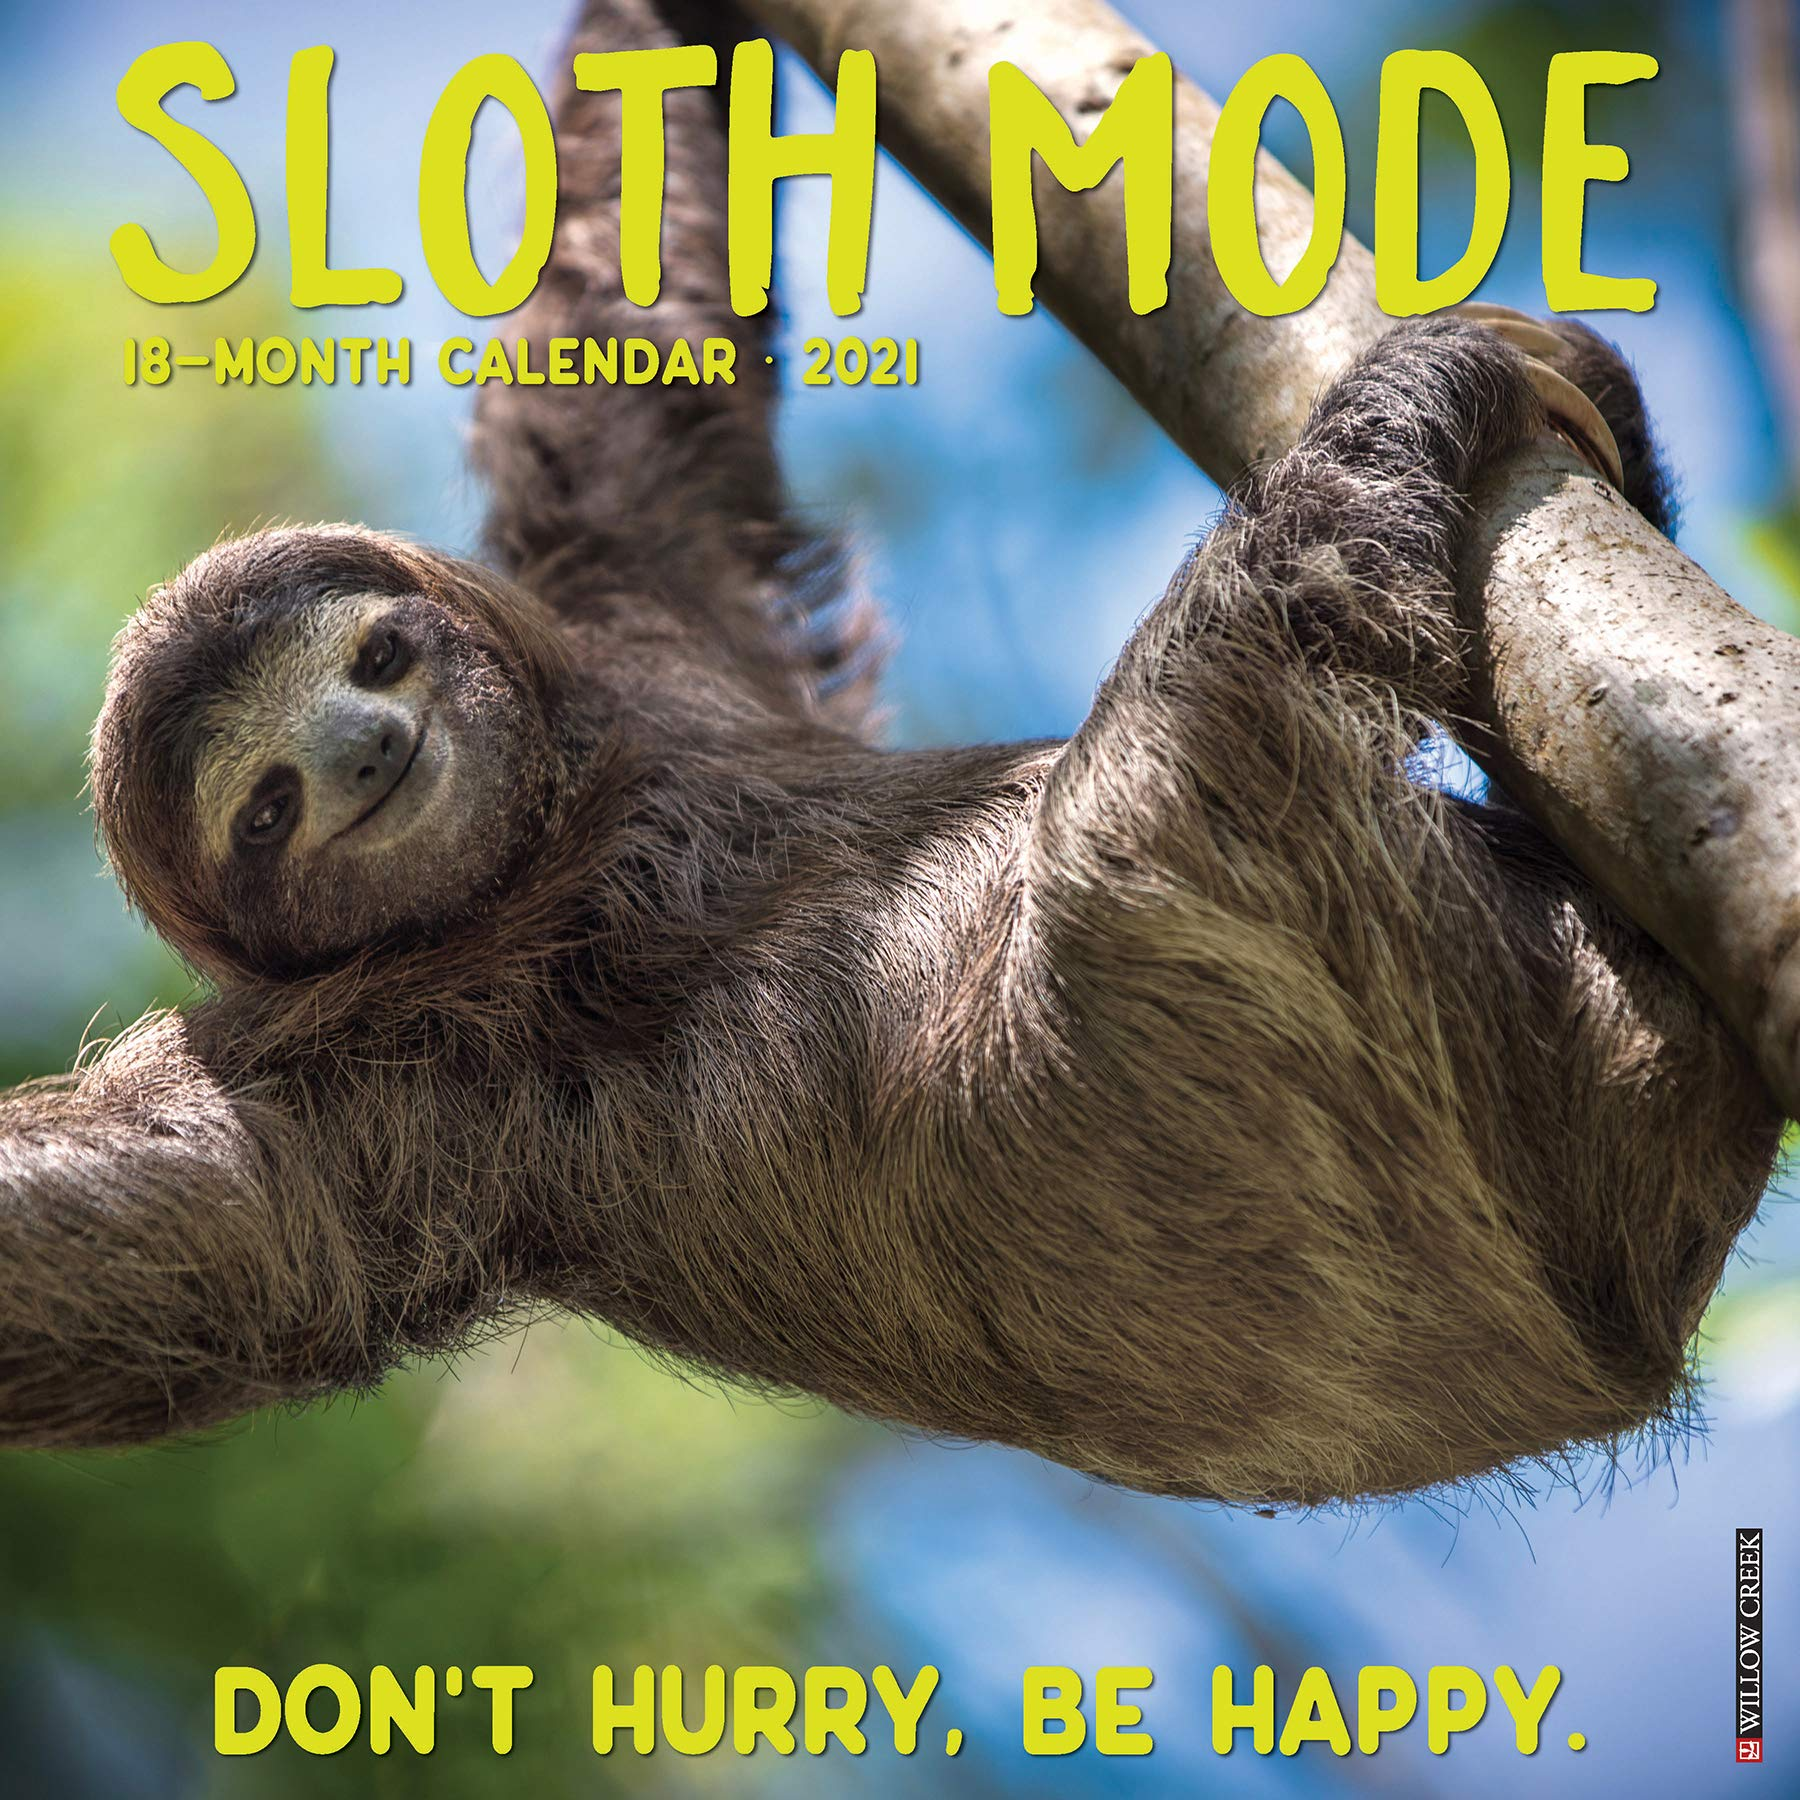 Sloth Mode 2021 Wall Calendar